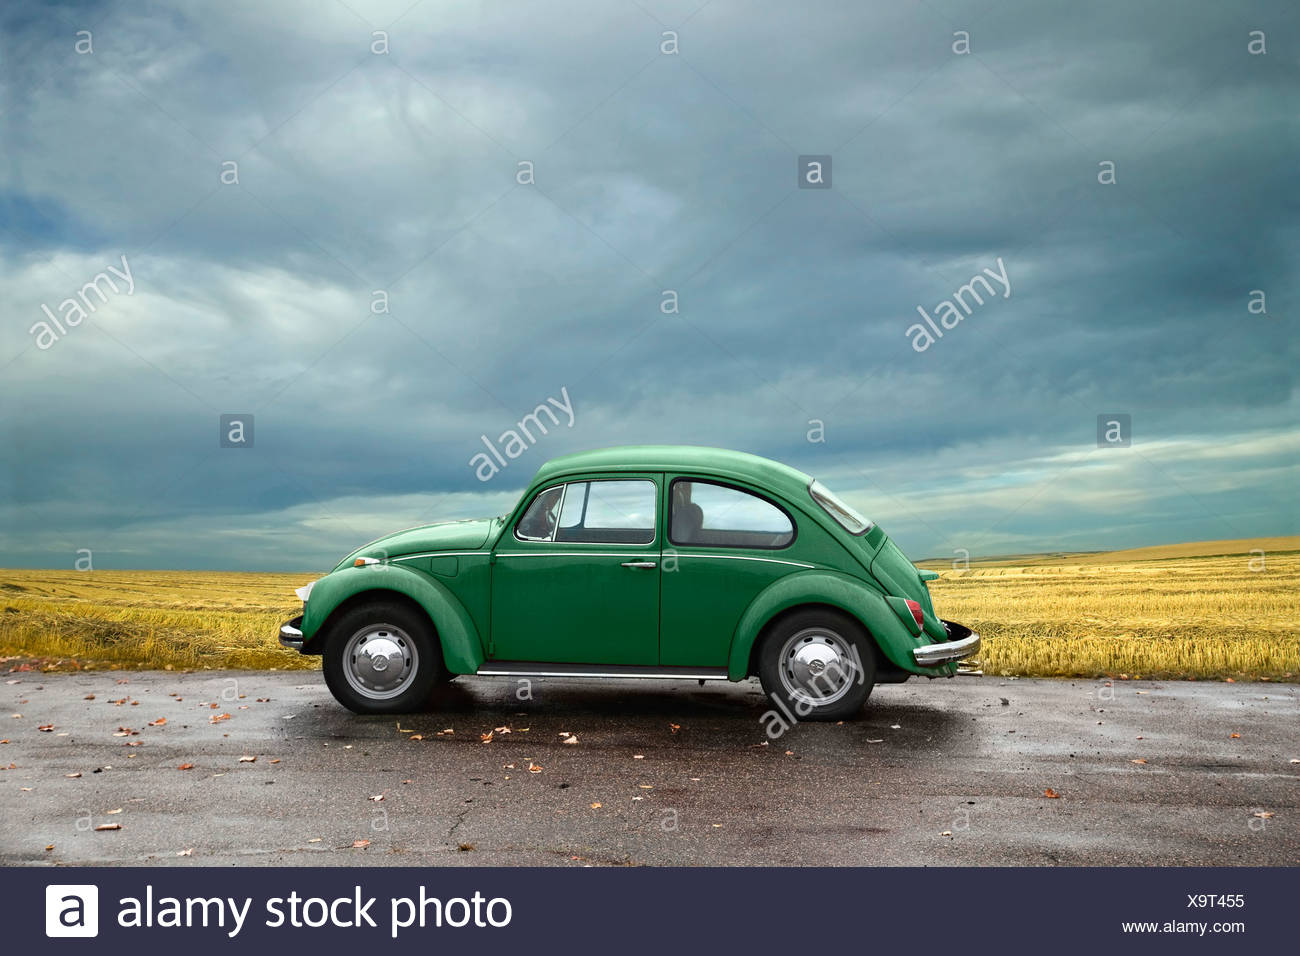 Green VW beetle parked near a field on an overcast day - Stock Image